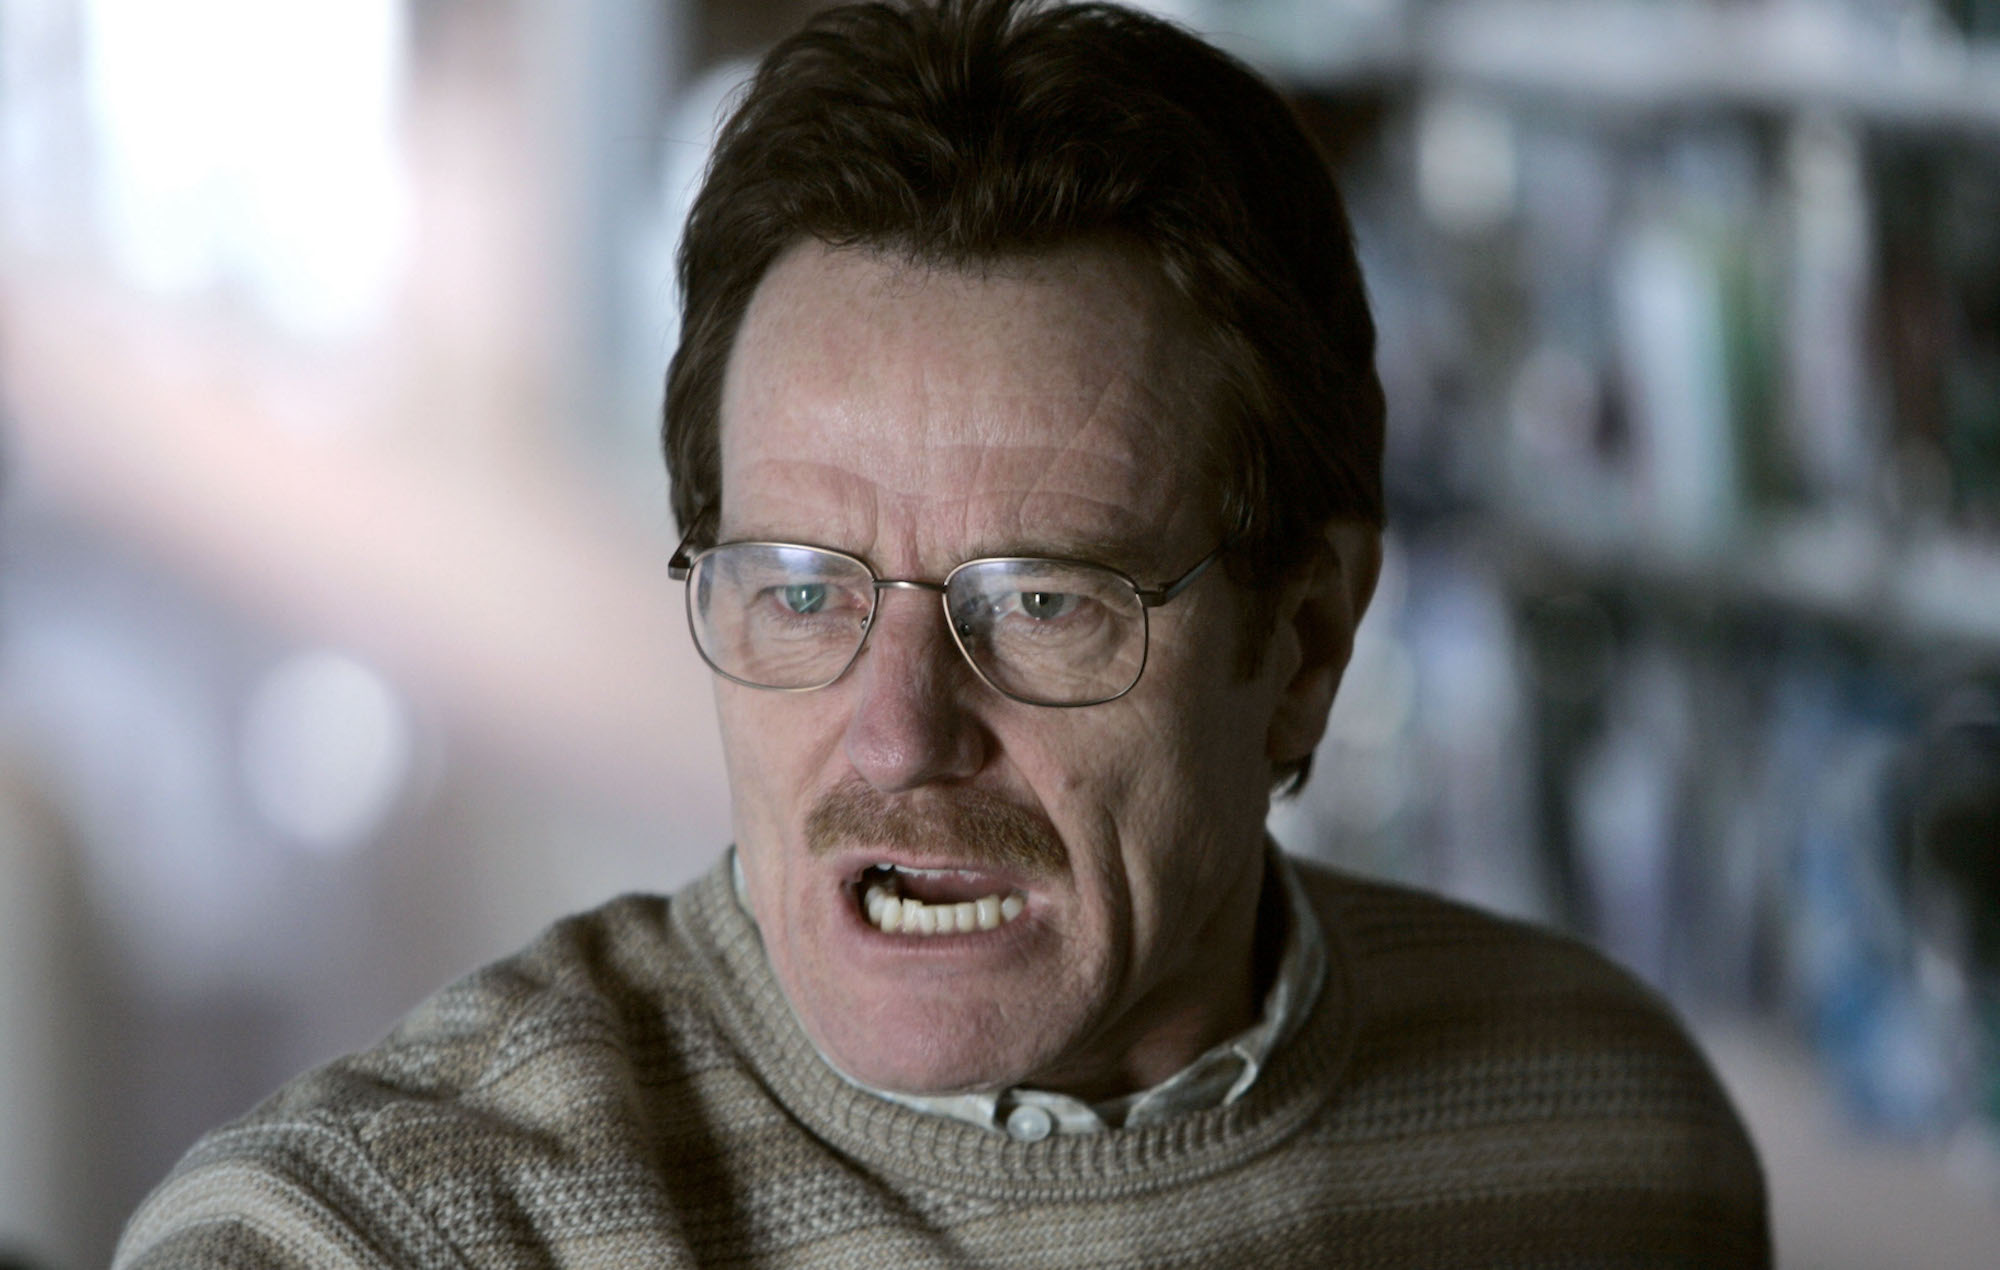 Bryan Cranston nearly turned down 'Breaking Bad' role due to 'Malcolm In The Middle'